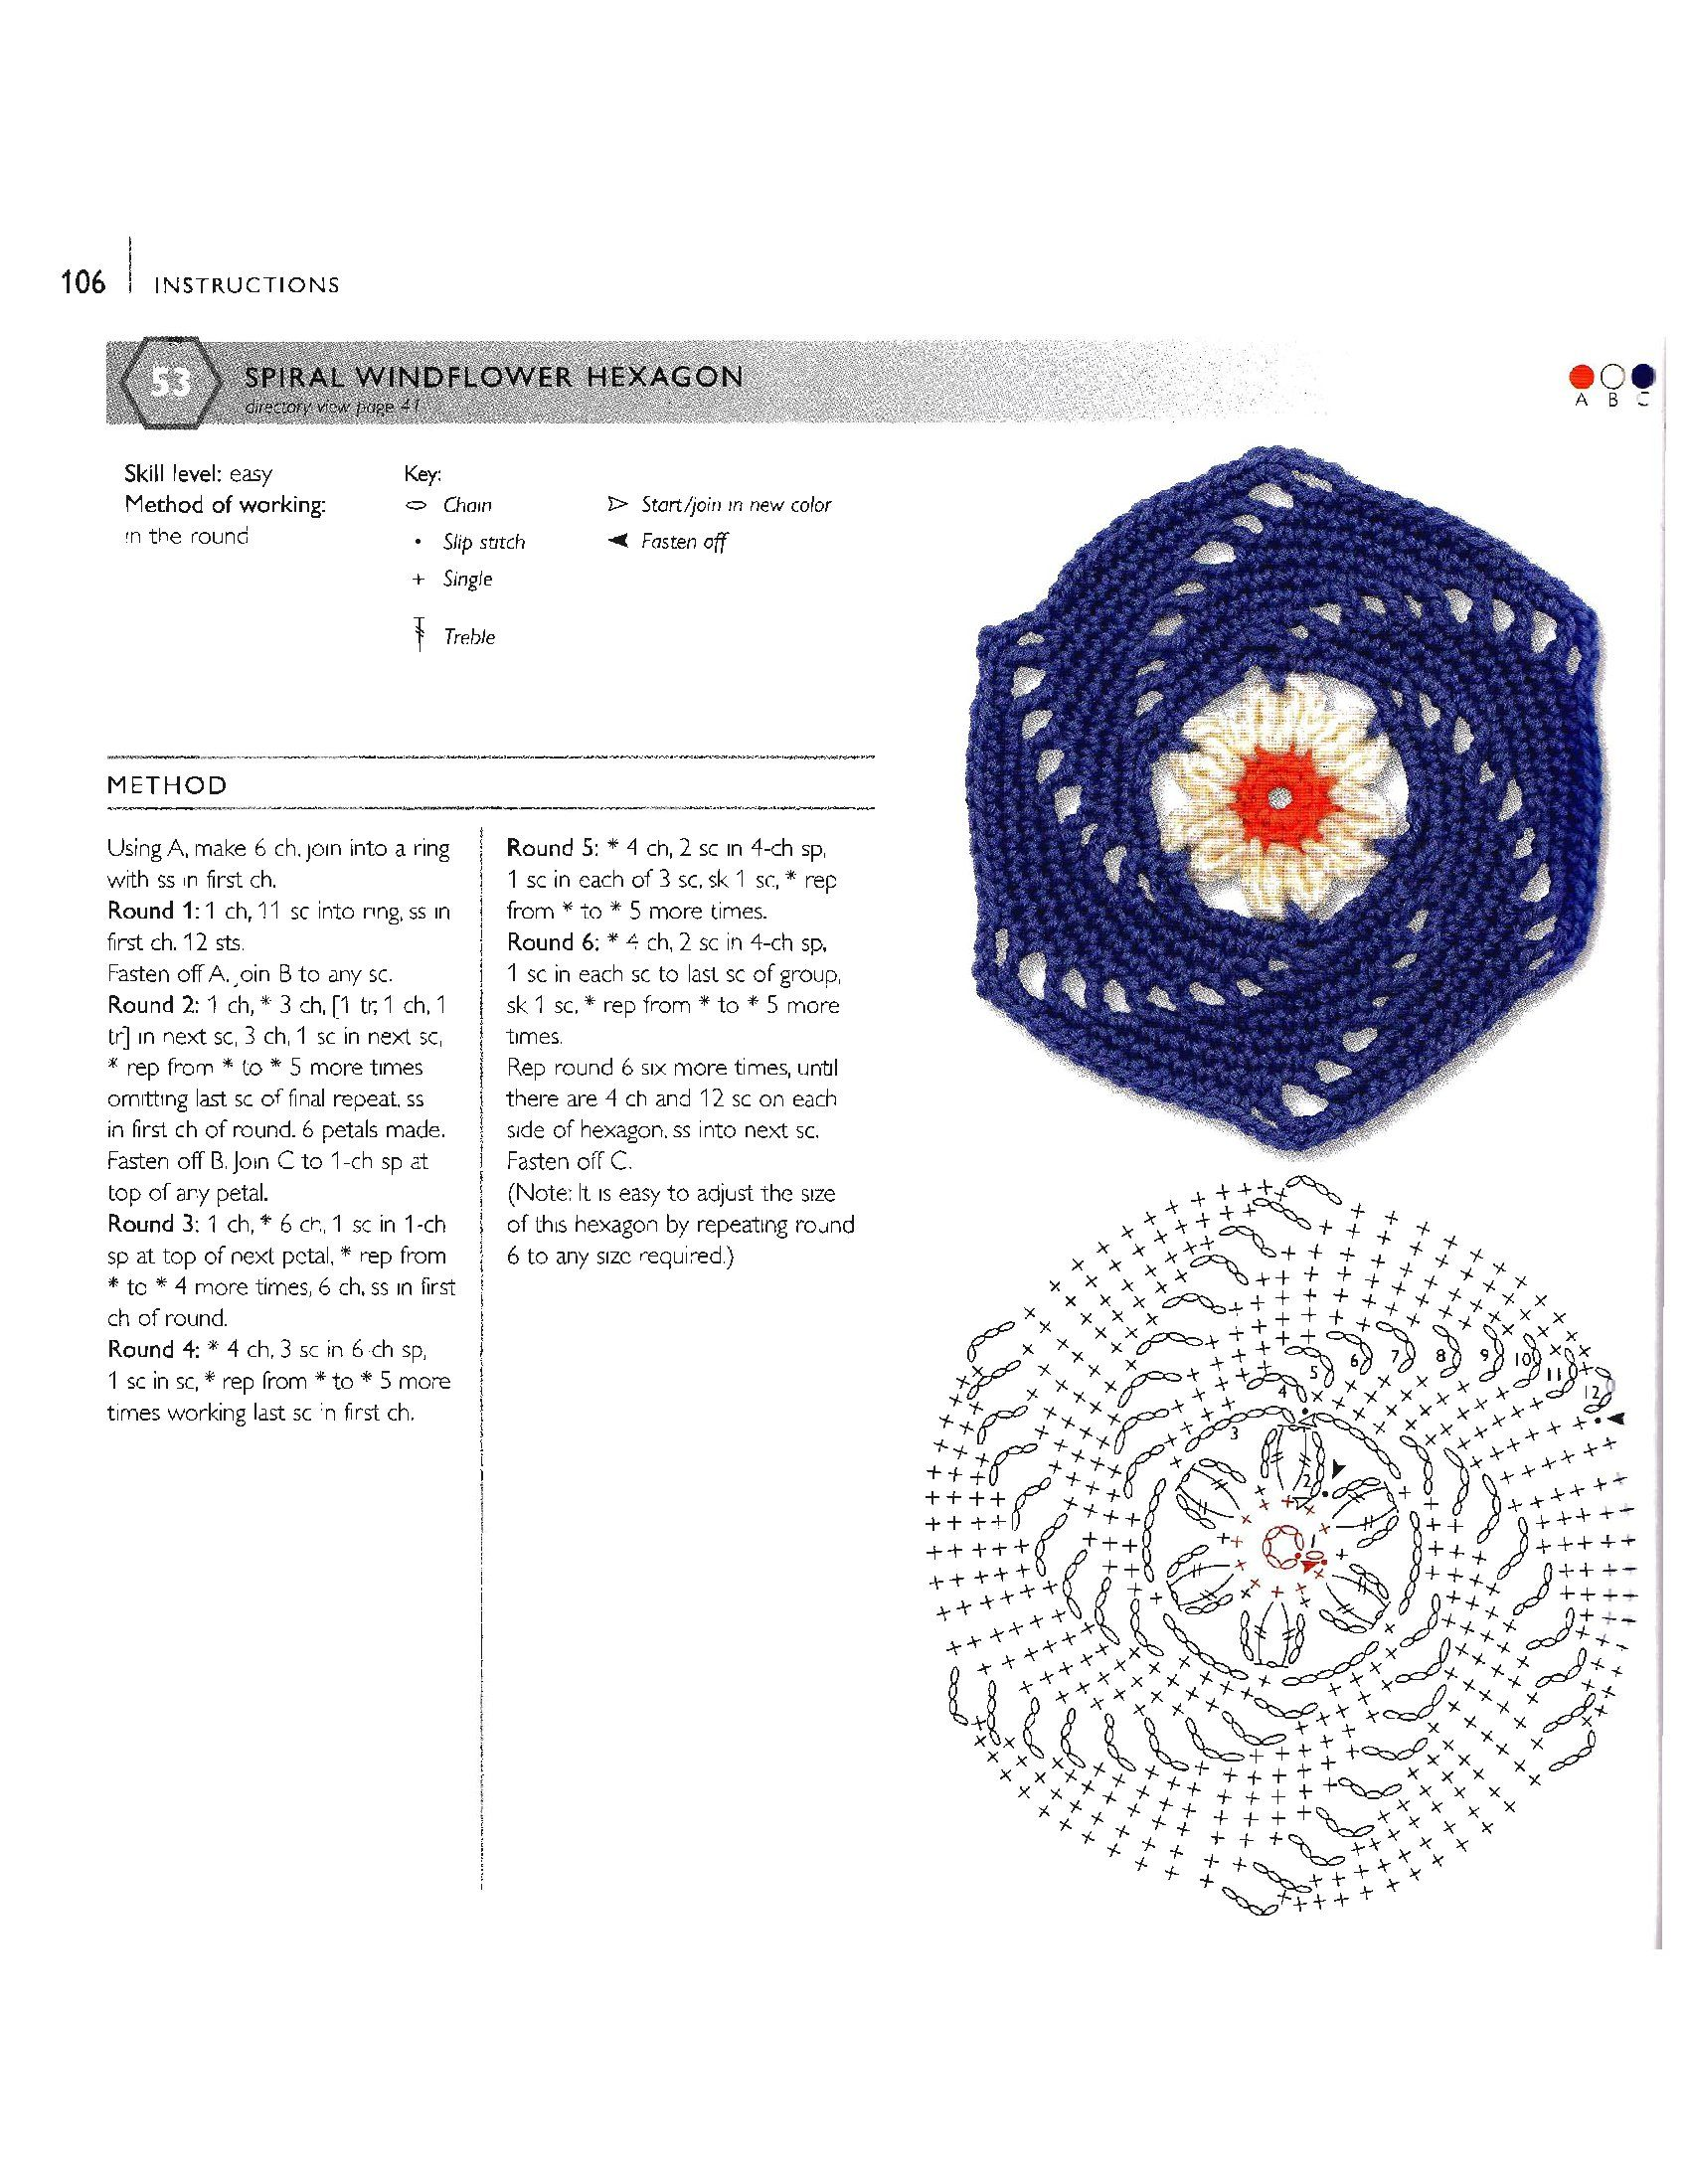 CROCHET SPIRAL WILDFLOWER HEXAGON GRANNY SQUARE WITH DIAGRAM AND ...